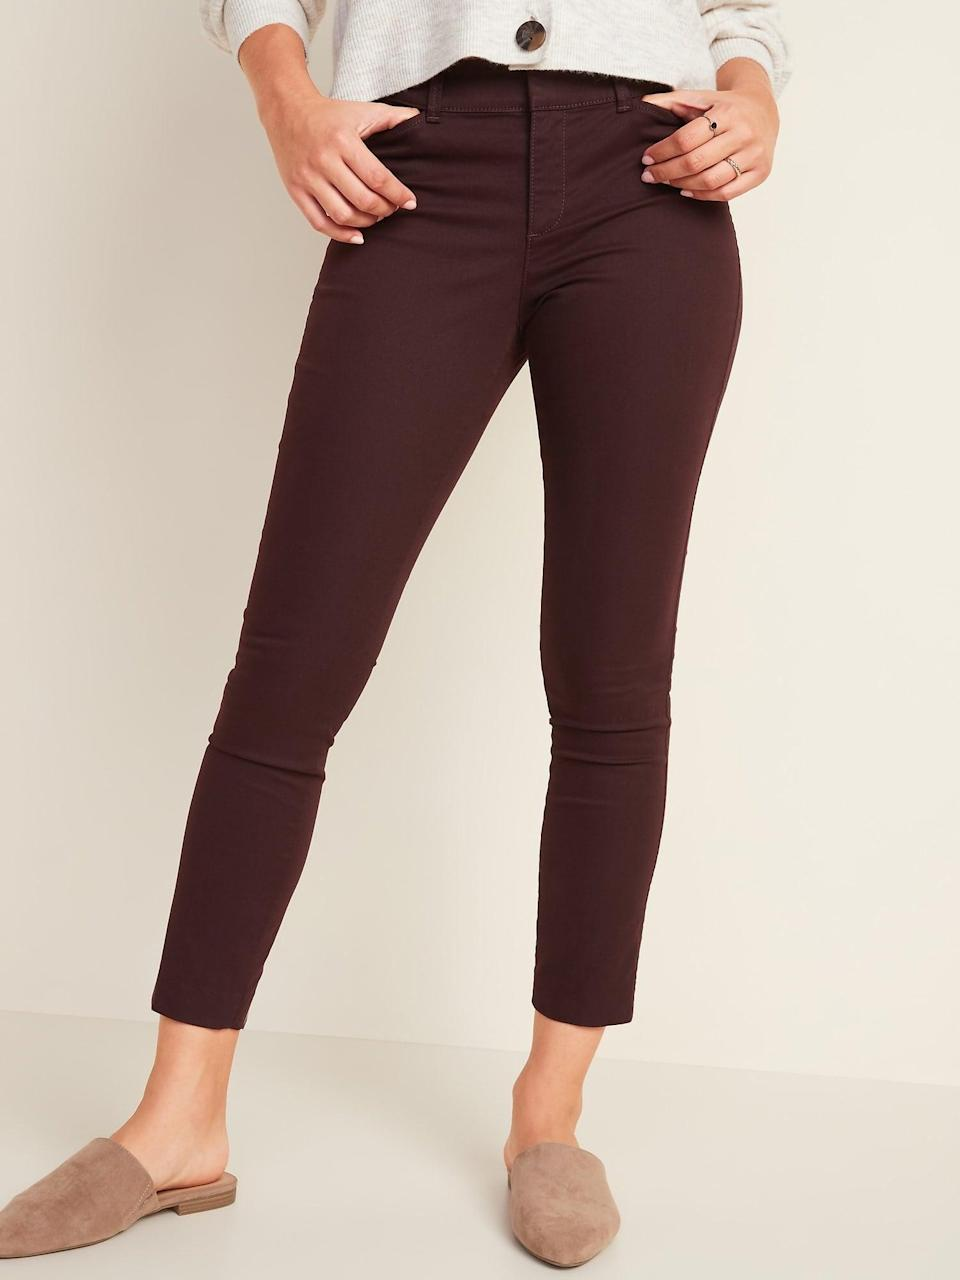 <p>These <span>Mid-Rise Pixie Ankle Chinos</span> ($30, originally $35) have a fitted flattering silhouette.</p>